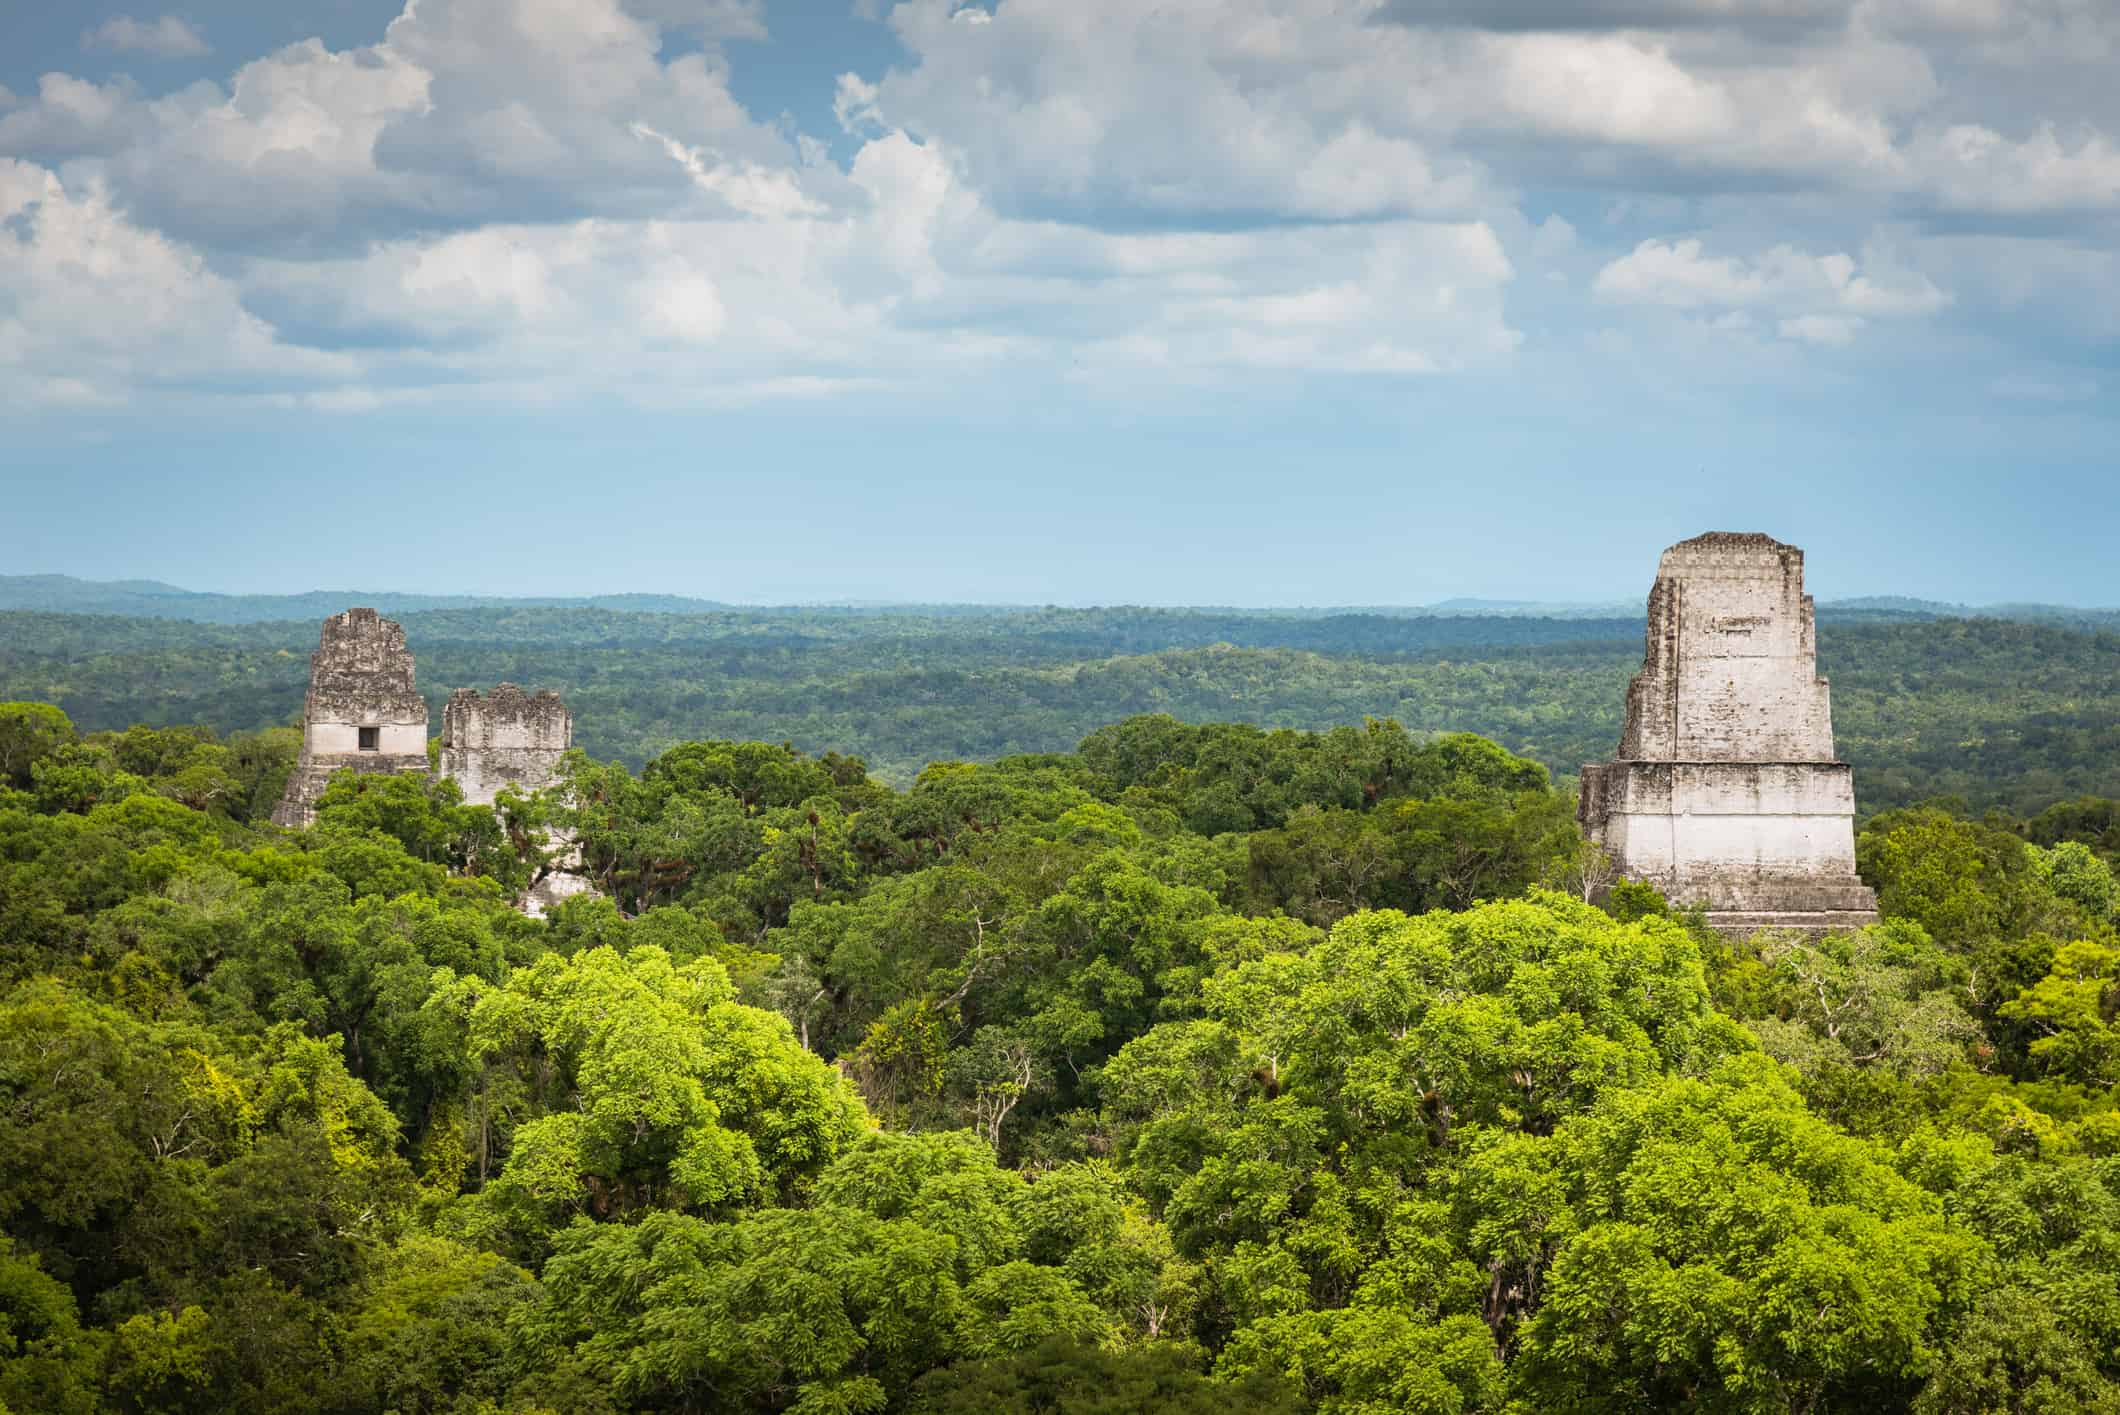 View of the Tikal temples rising above the forest canopy, Guatemala